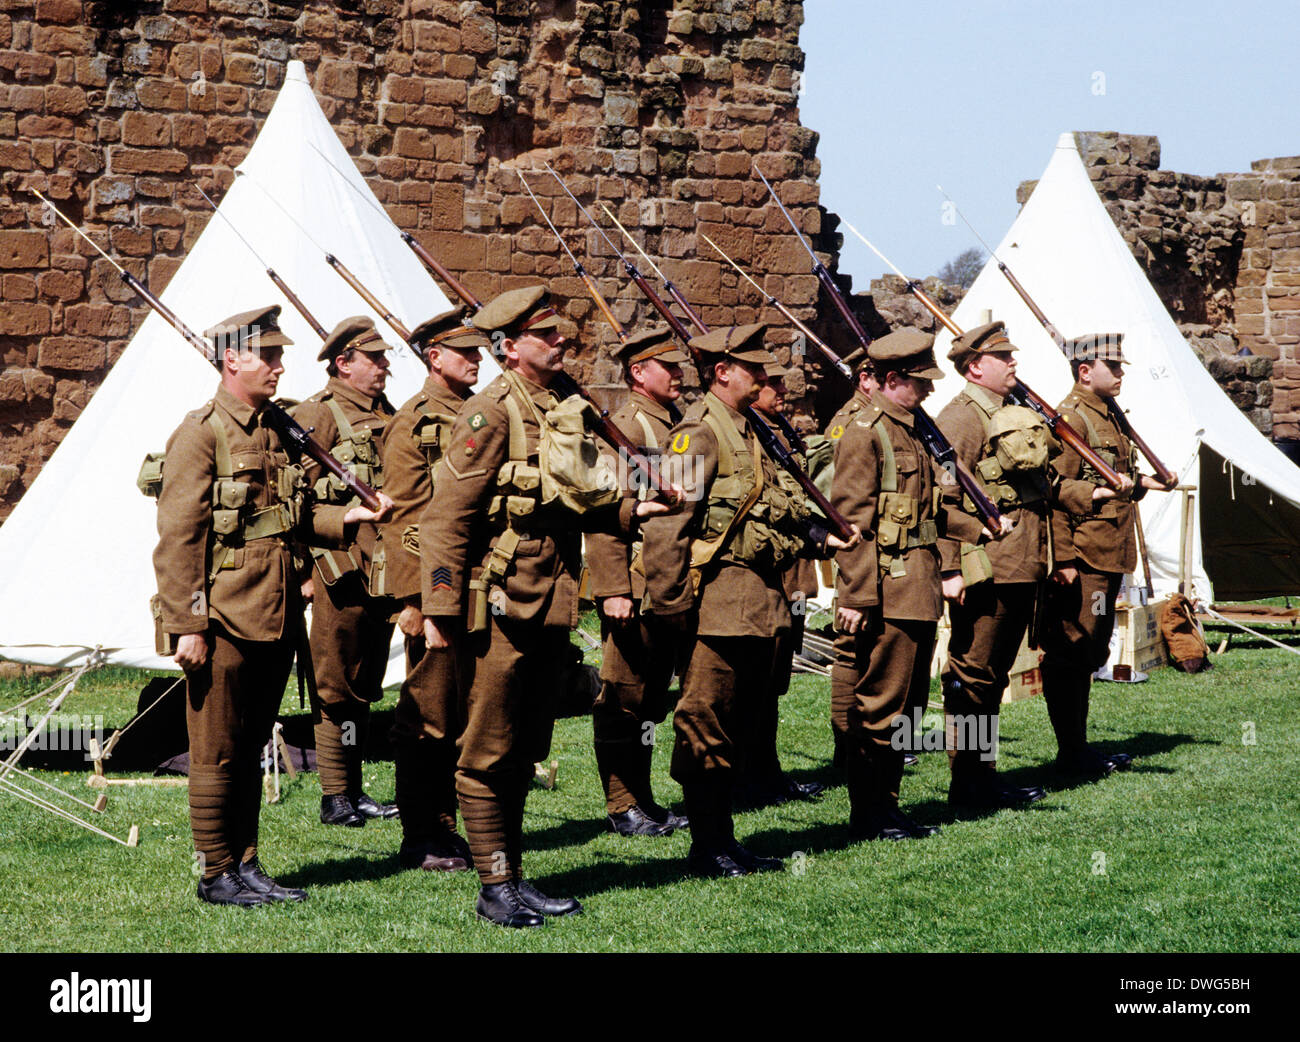 1st World War, British Soldiers, 1914-1918, historical re-enactment WW1 First Great soldier uniform uniforms England UK encampment - Stock Image